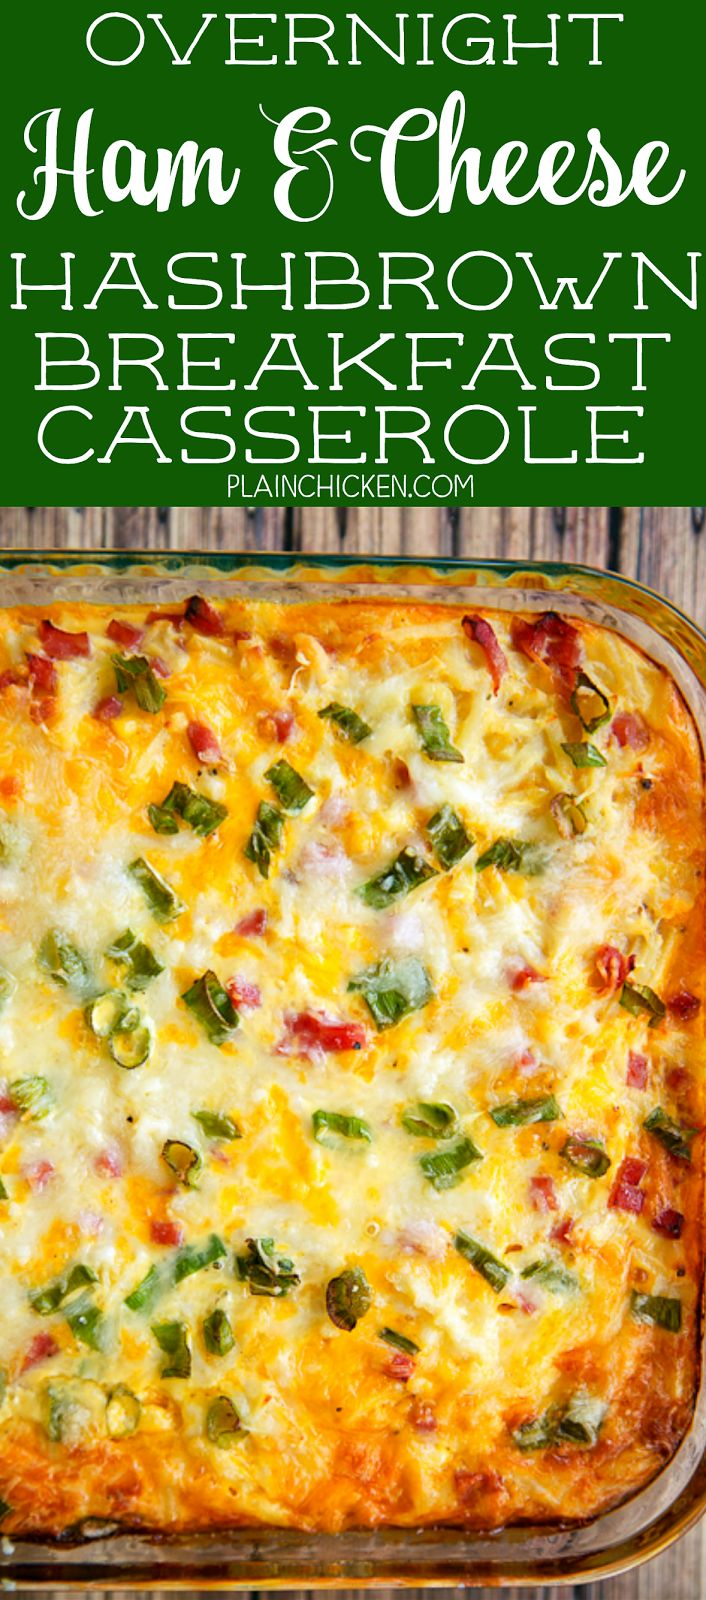 Overnight Ham and Cheese Hashbrown Breakfast Casserole - hash browns, cheese, ham, green onions, eggs, evaporated milk - mix together and refrigerate overnight for a quick breakfast. Great for overnight guest and the upcoming holidays!